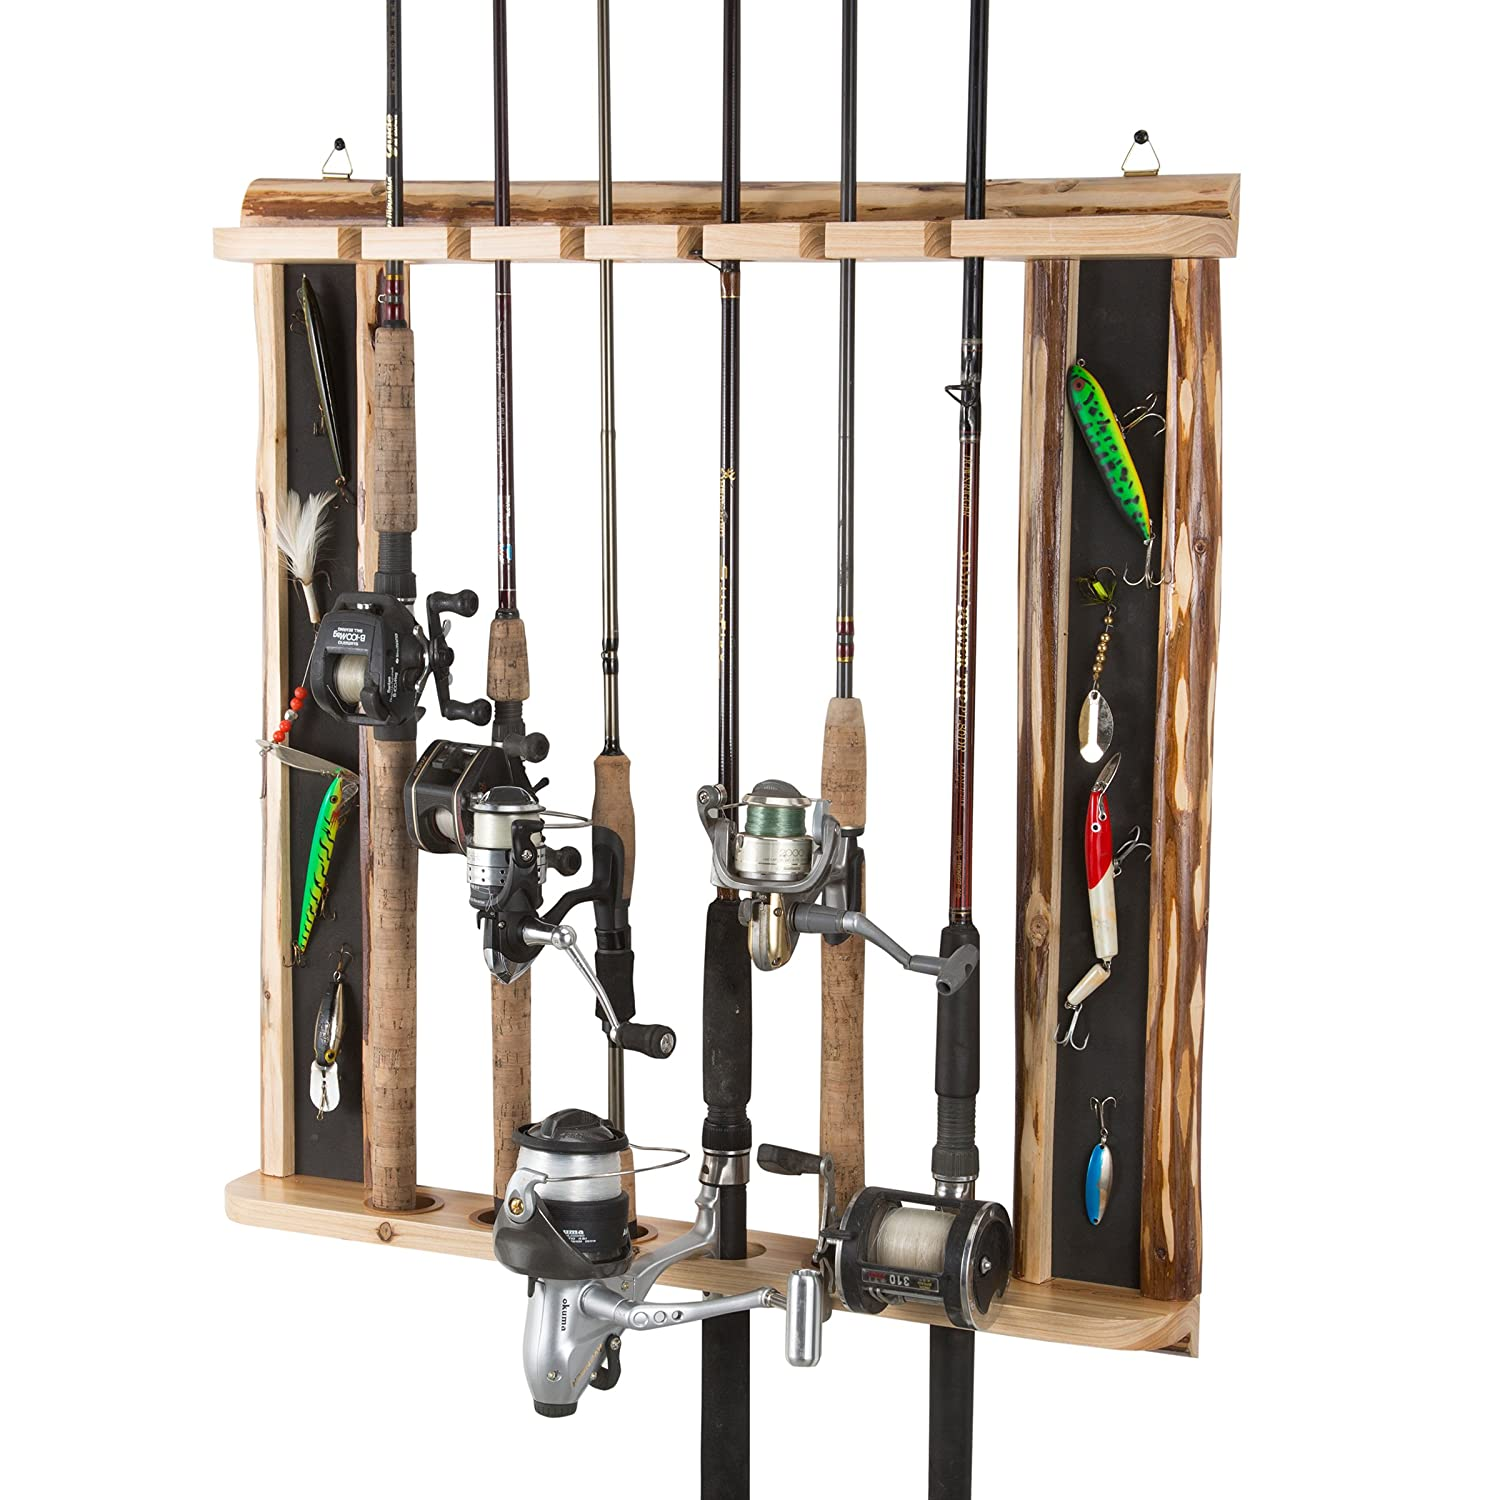 Rush Creek Creations Rustic 6 Fishing Rod Wall Storage Rack – 3 Minute Assembly – Versatile Configurations